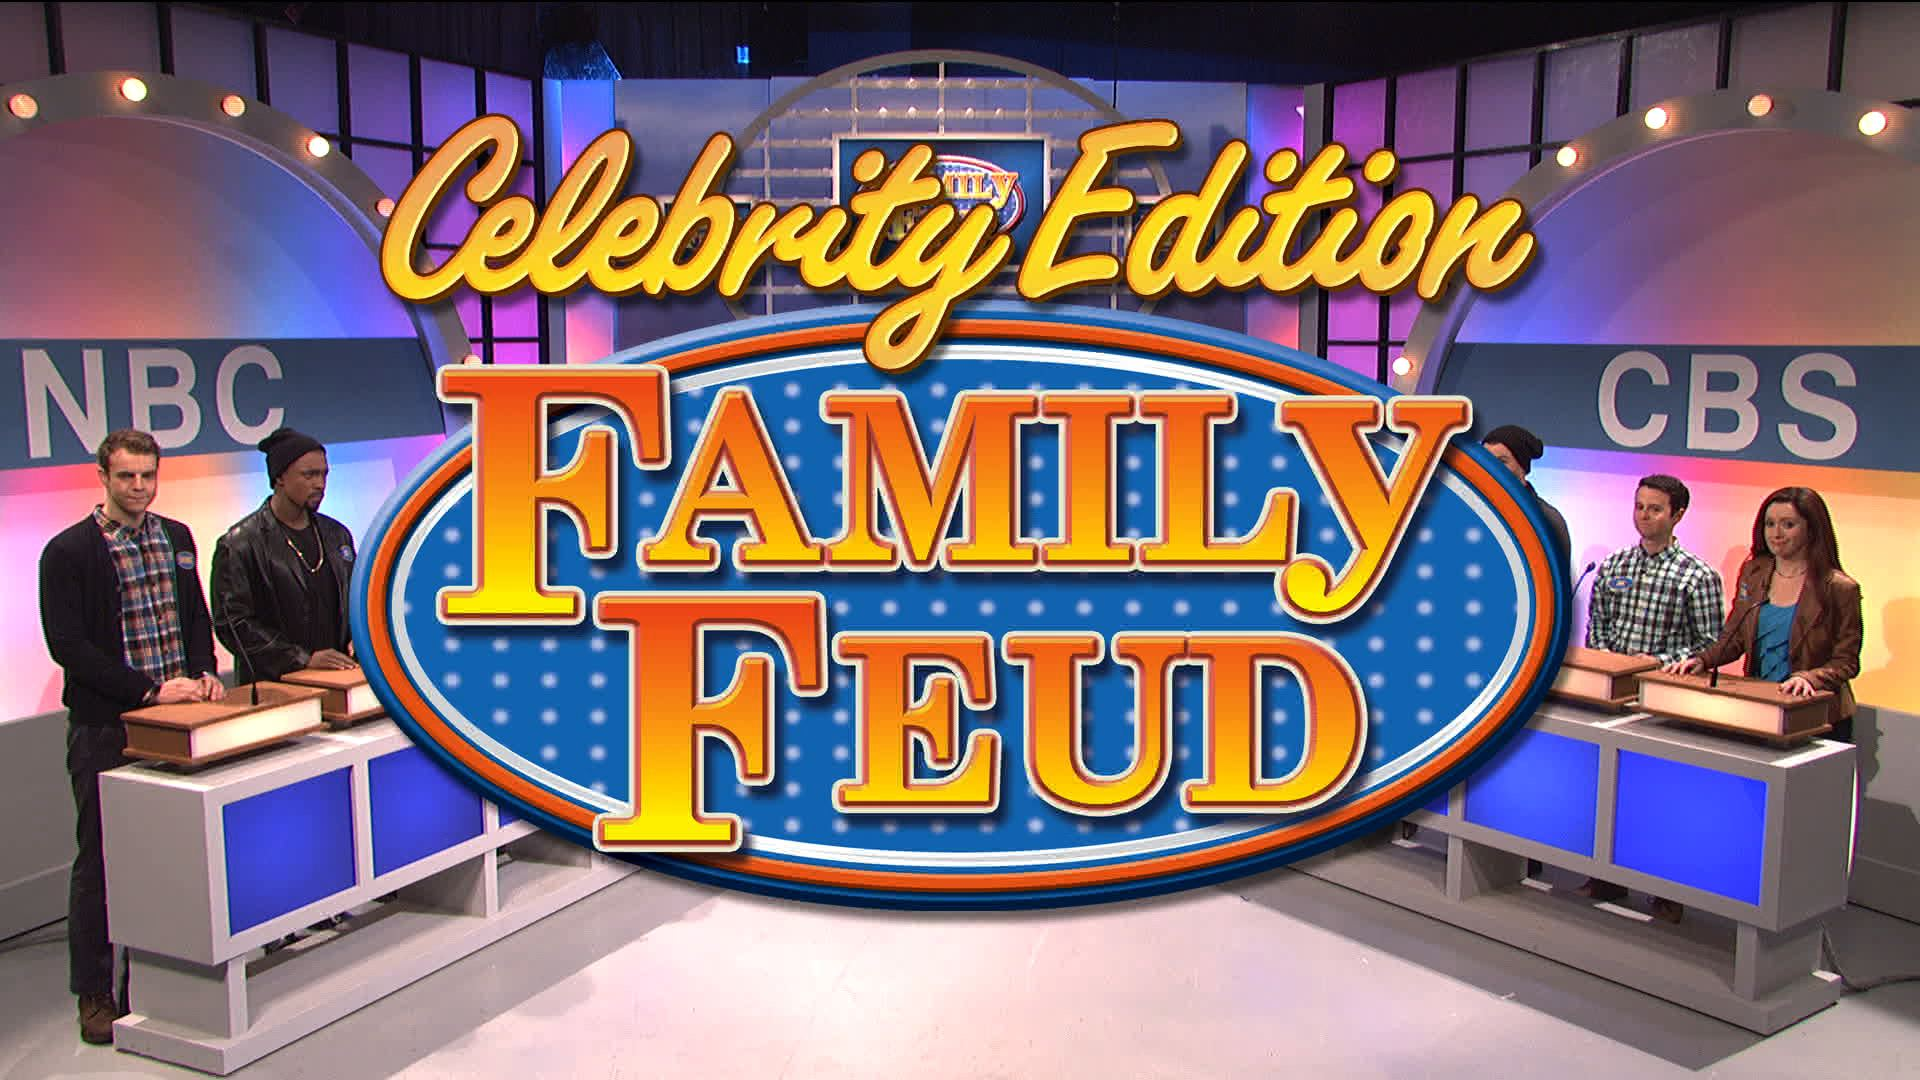 Celebrity Edition Family Feud